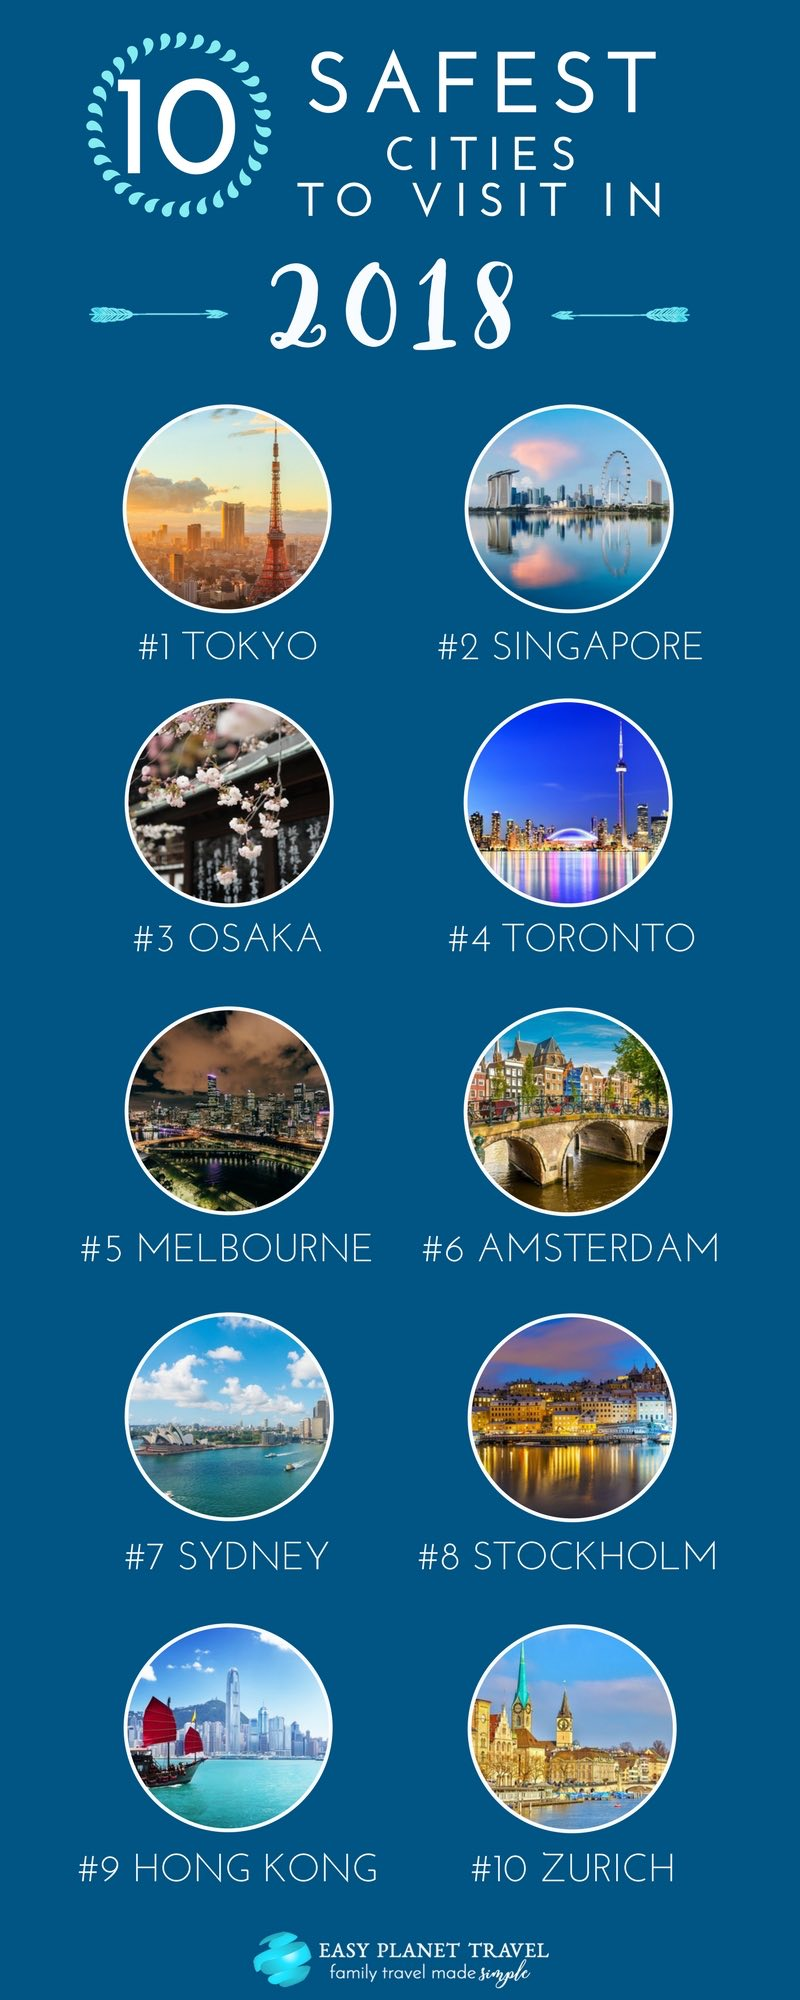 World's 10 Safest Cities to Visit in 2018 Infographic